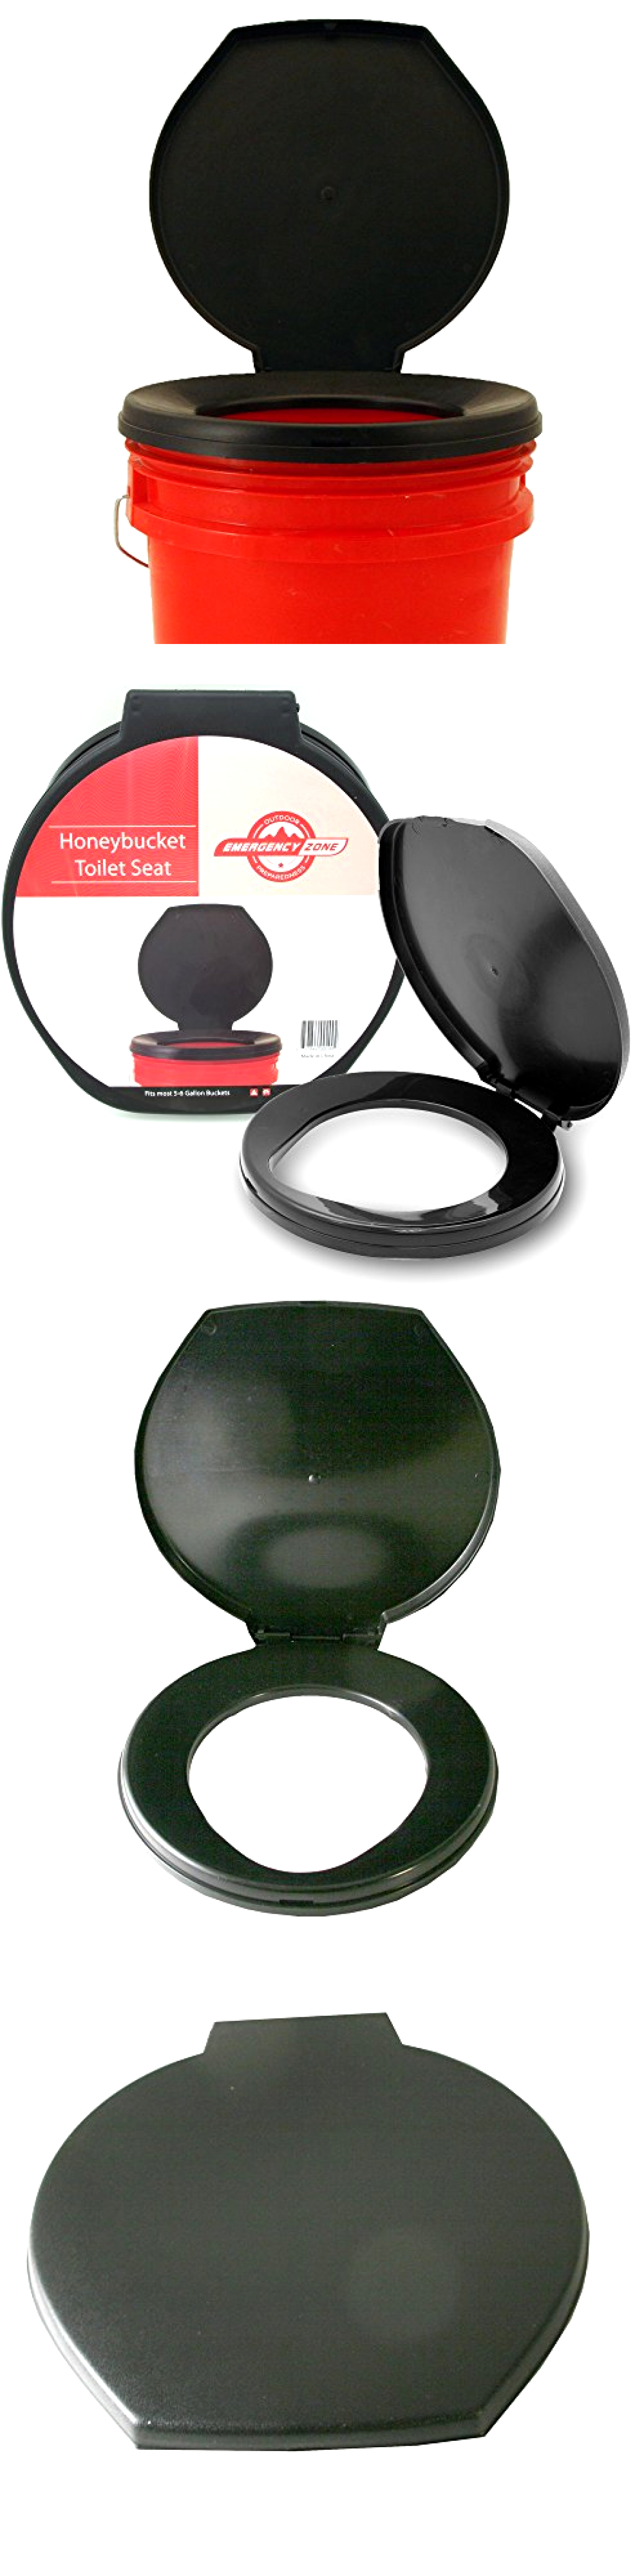 Portable Toilets And Accessories 181397: Portable Toilet Seat Cover Camping  Travel Bathroom Outdoor Hygiene Sanitation